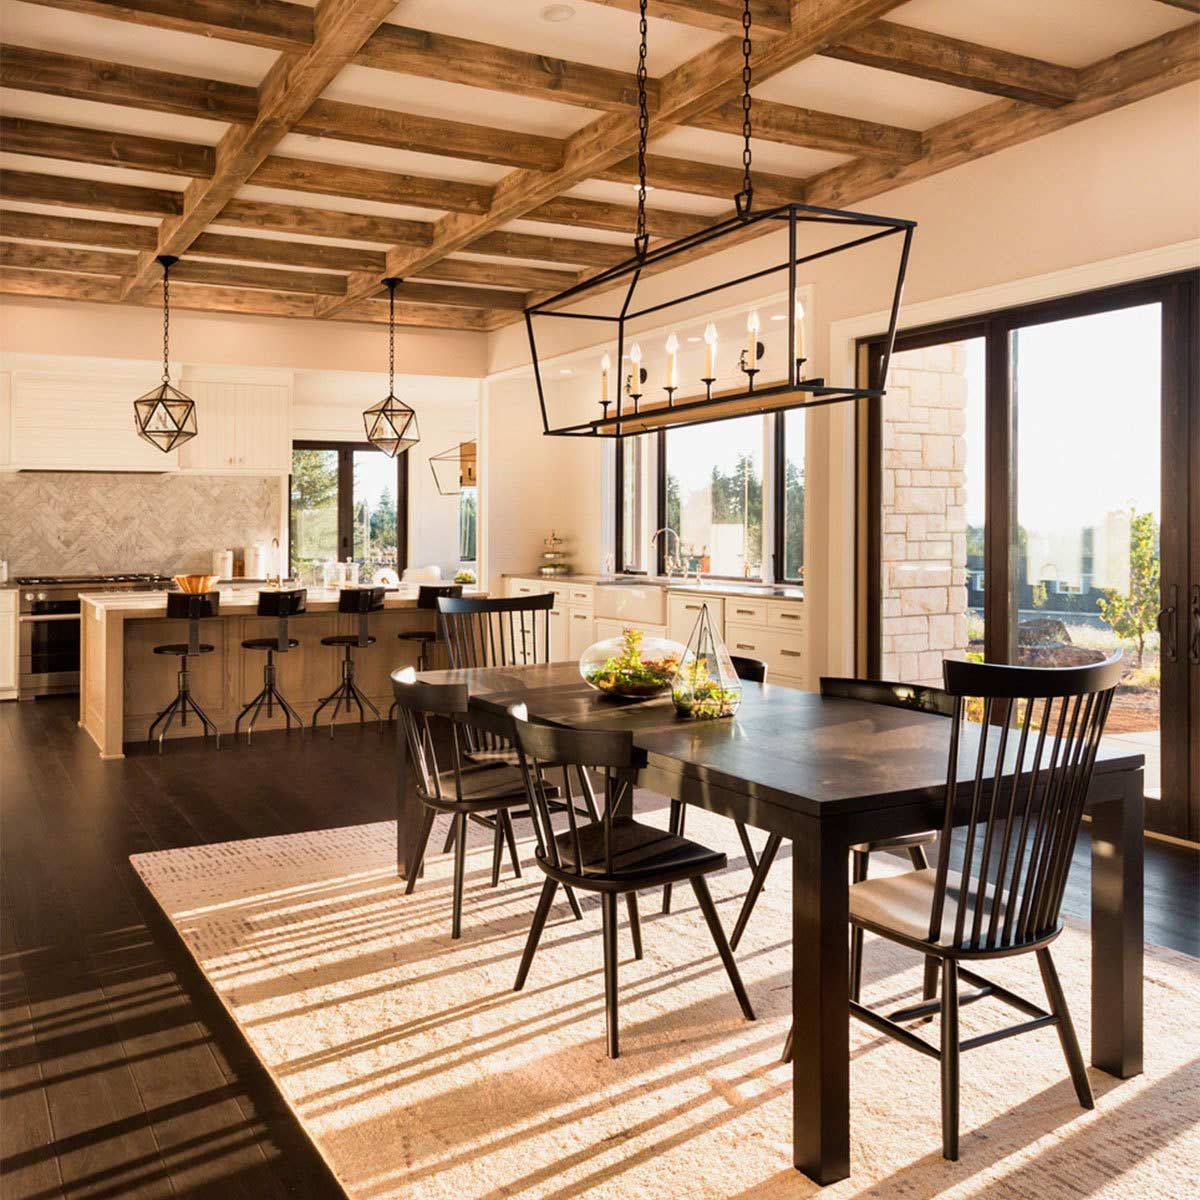 Updating Kitchens can Whet Appetites